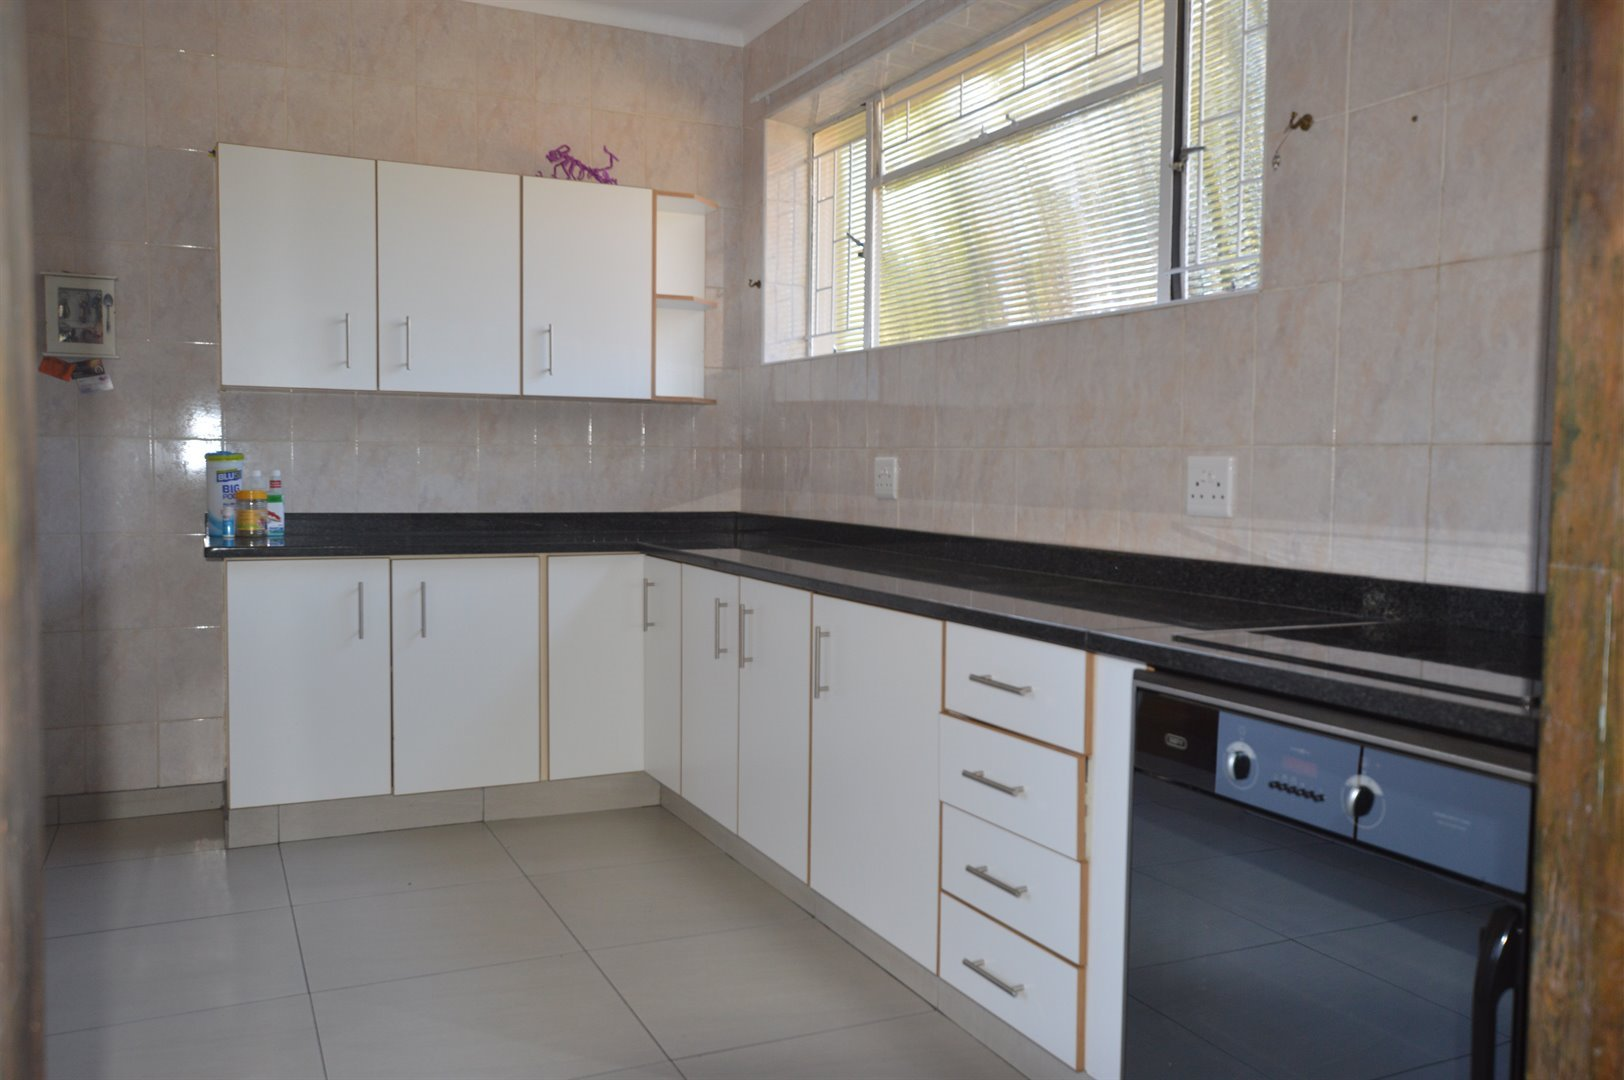 Vanderbijlpark Sw5 property for sale. Ref No: 13501187. Picture no 9